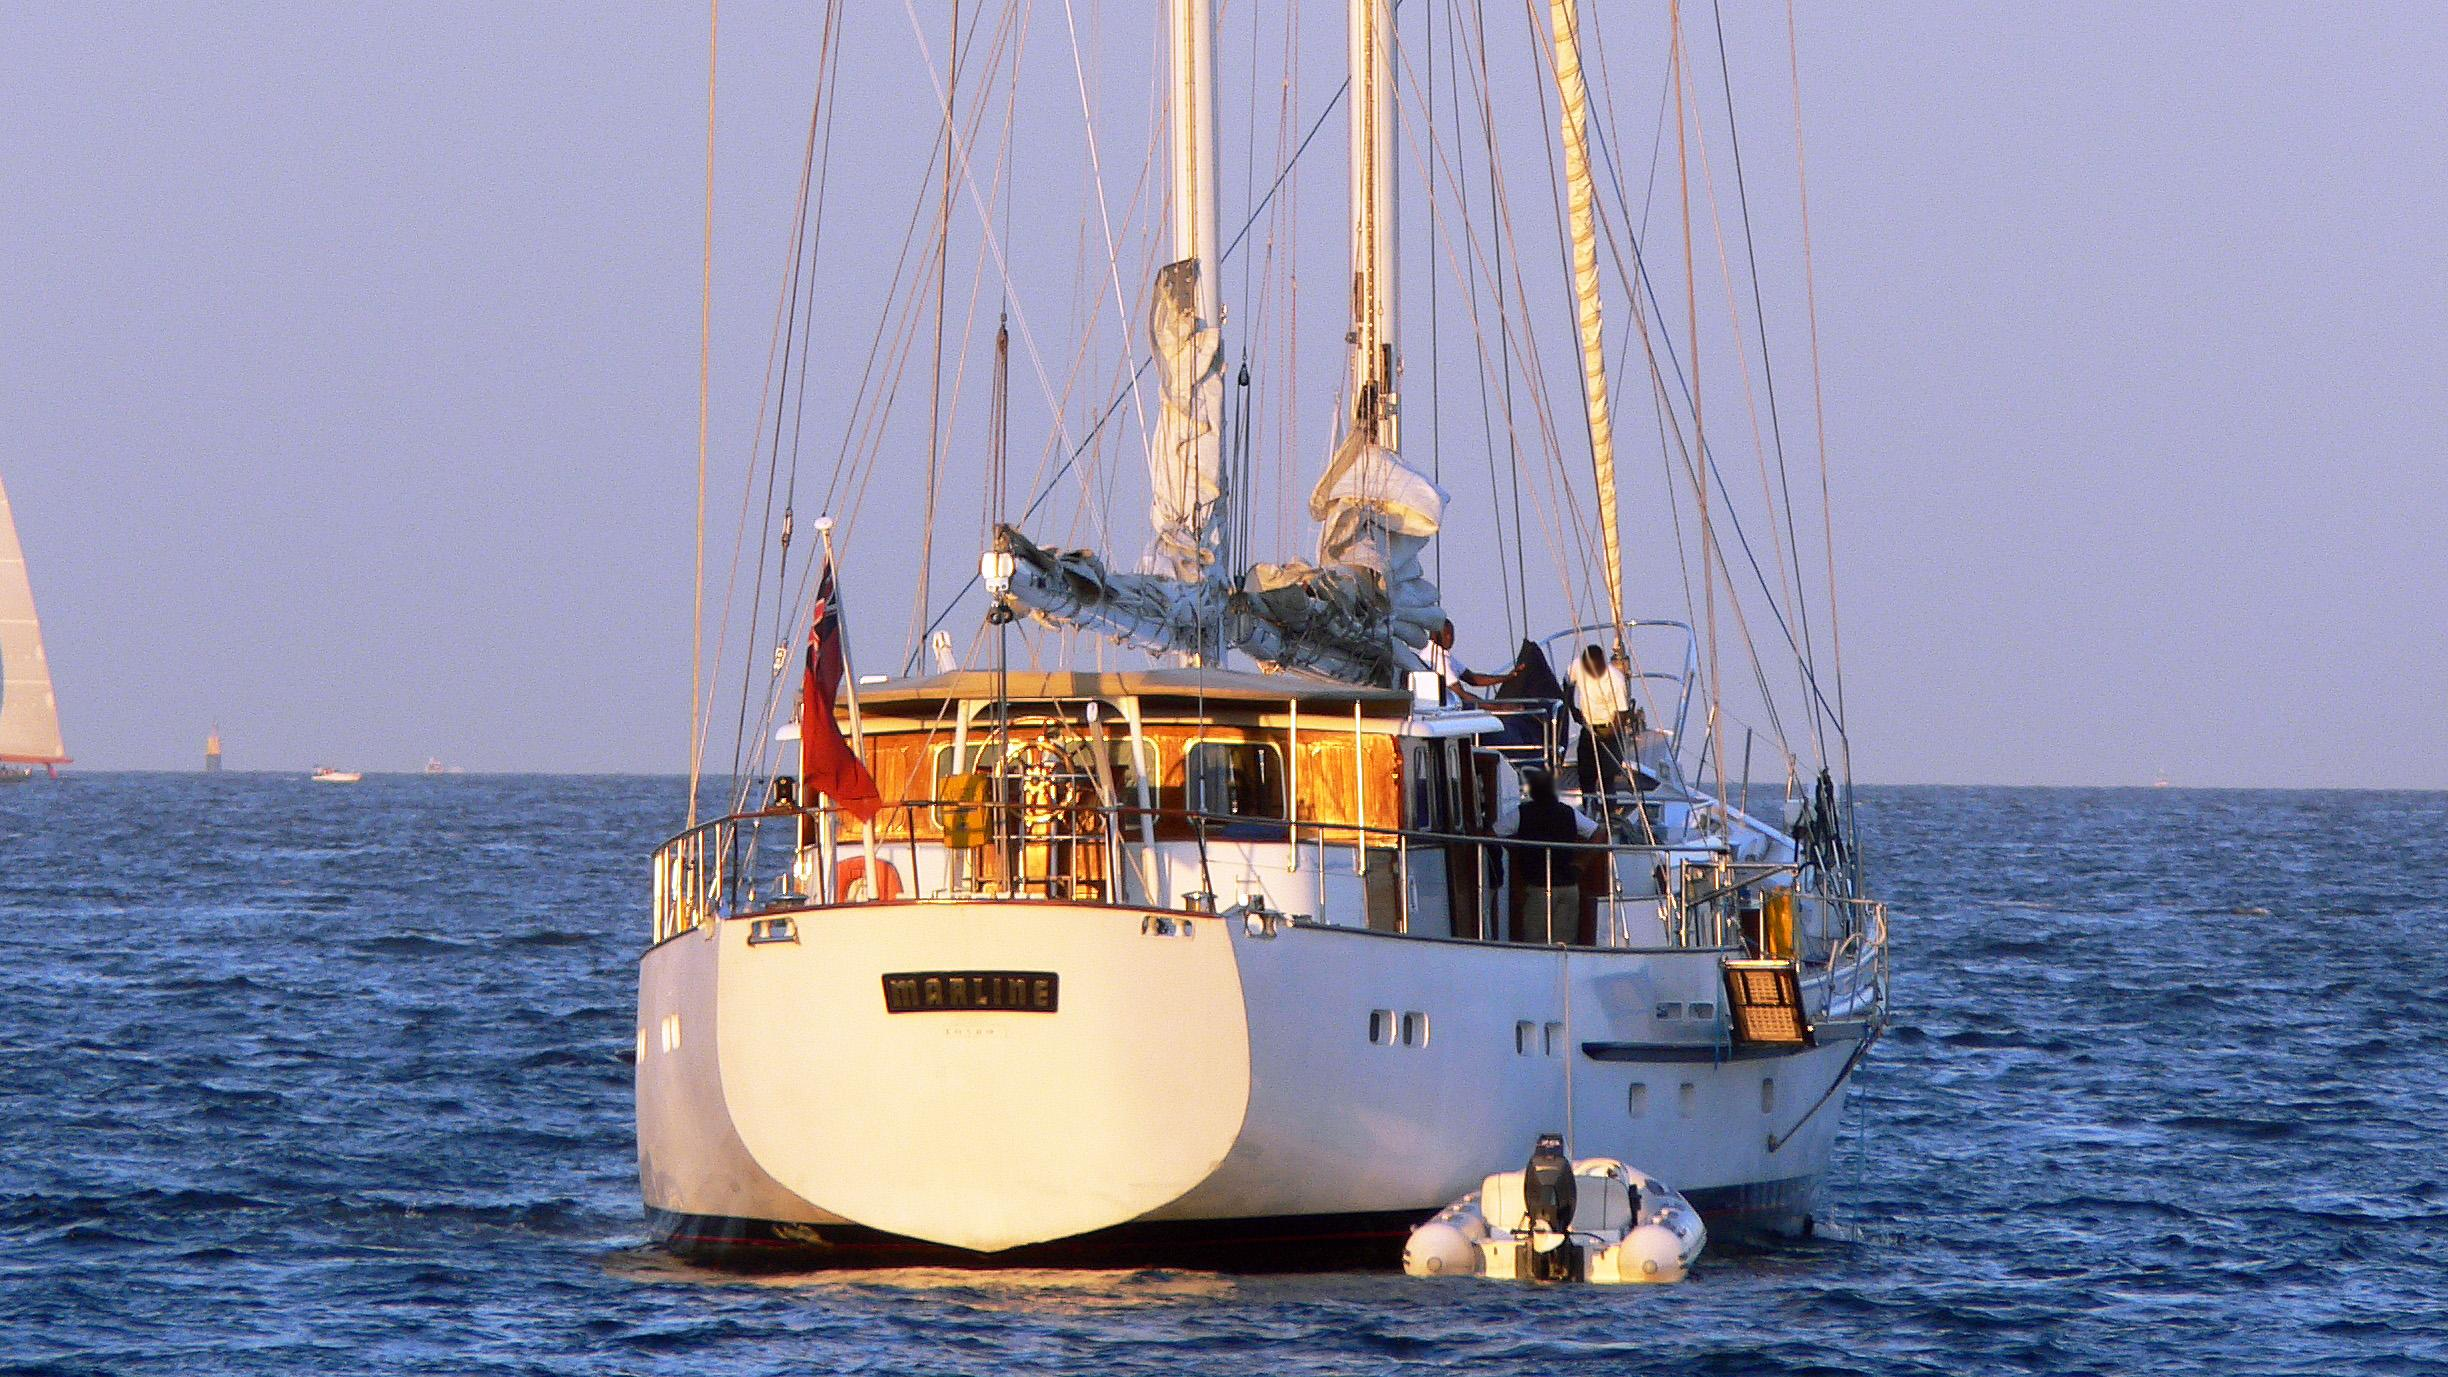 marline-sailing-yacht-cammenga-1974-36m-stern